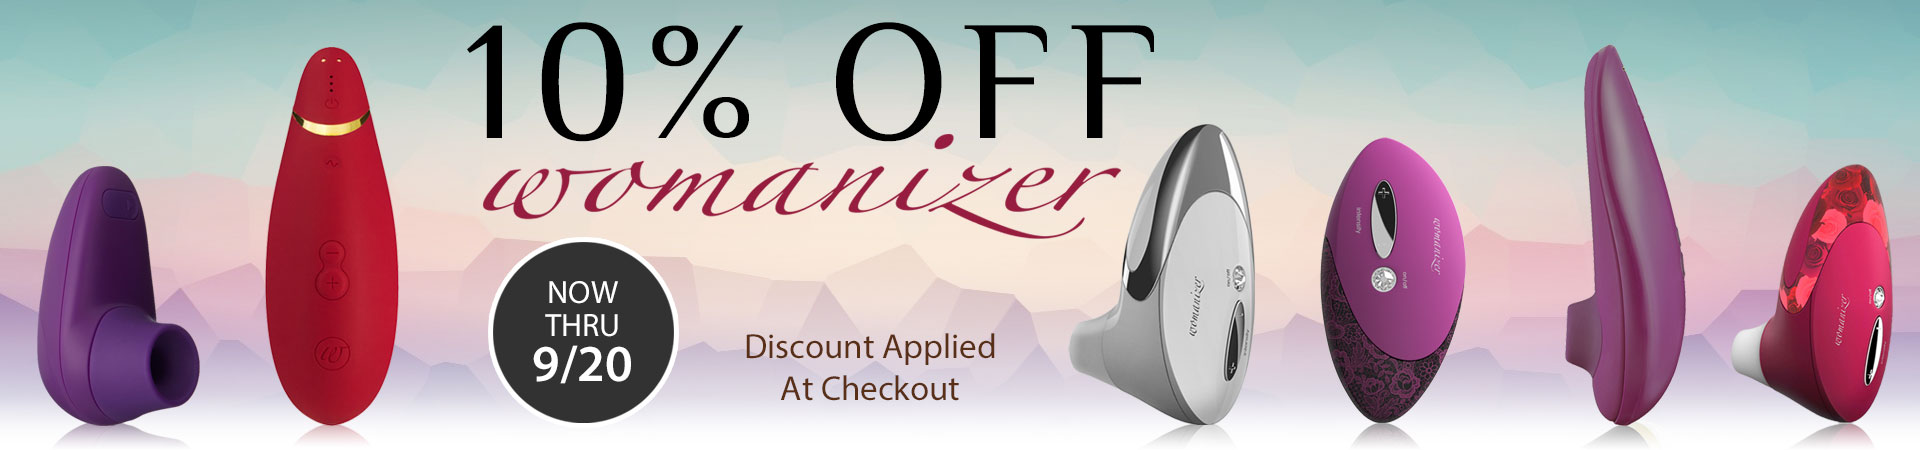 10% Off Womanizer - Now Thru 9/20 - Discount Applied At Checkout